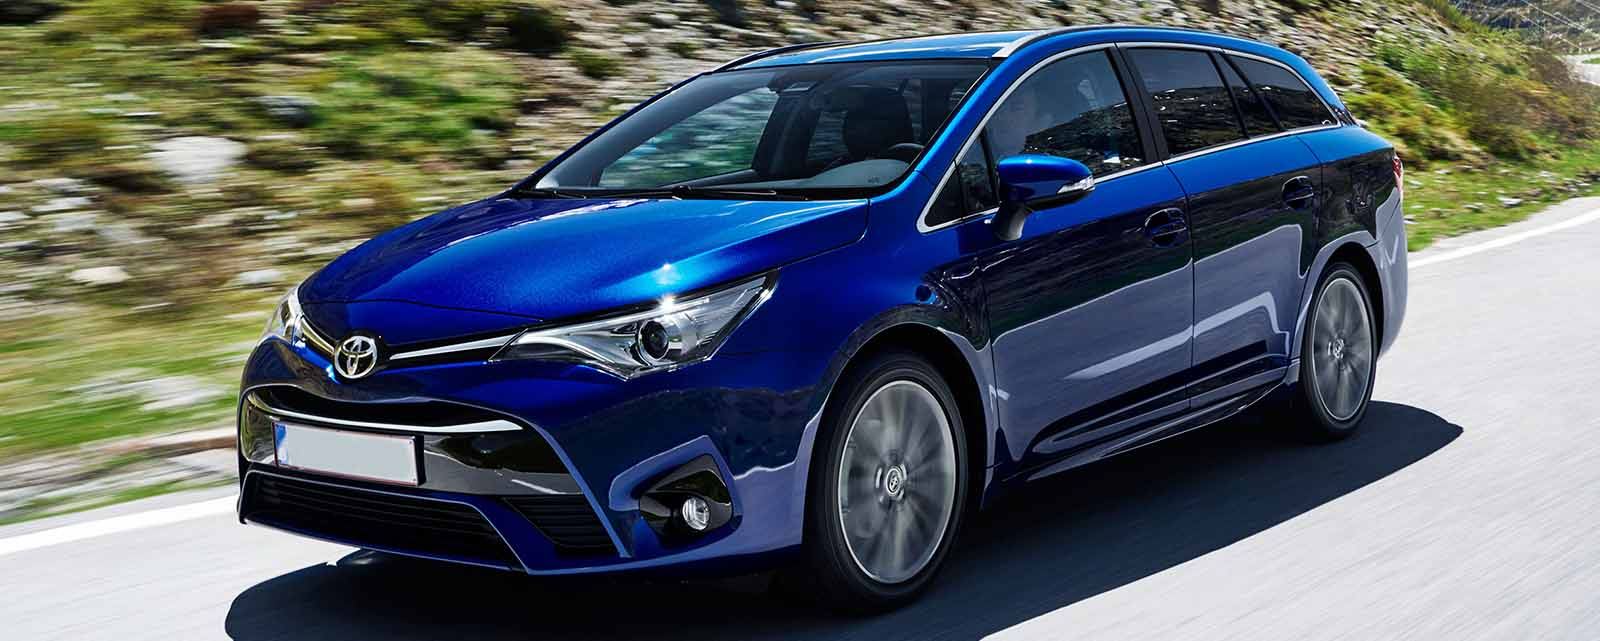 Toyota Avensis Parts and Accessories